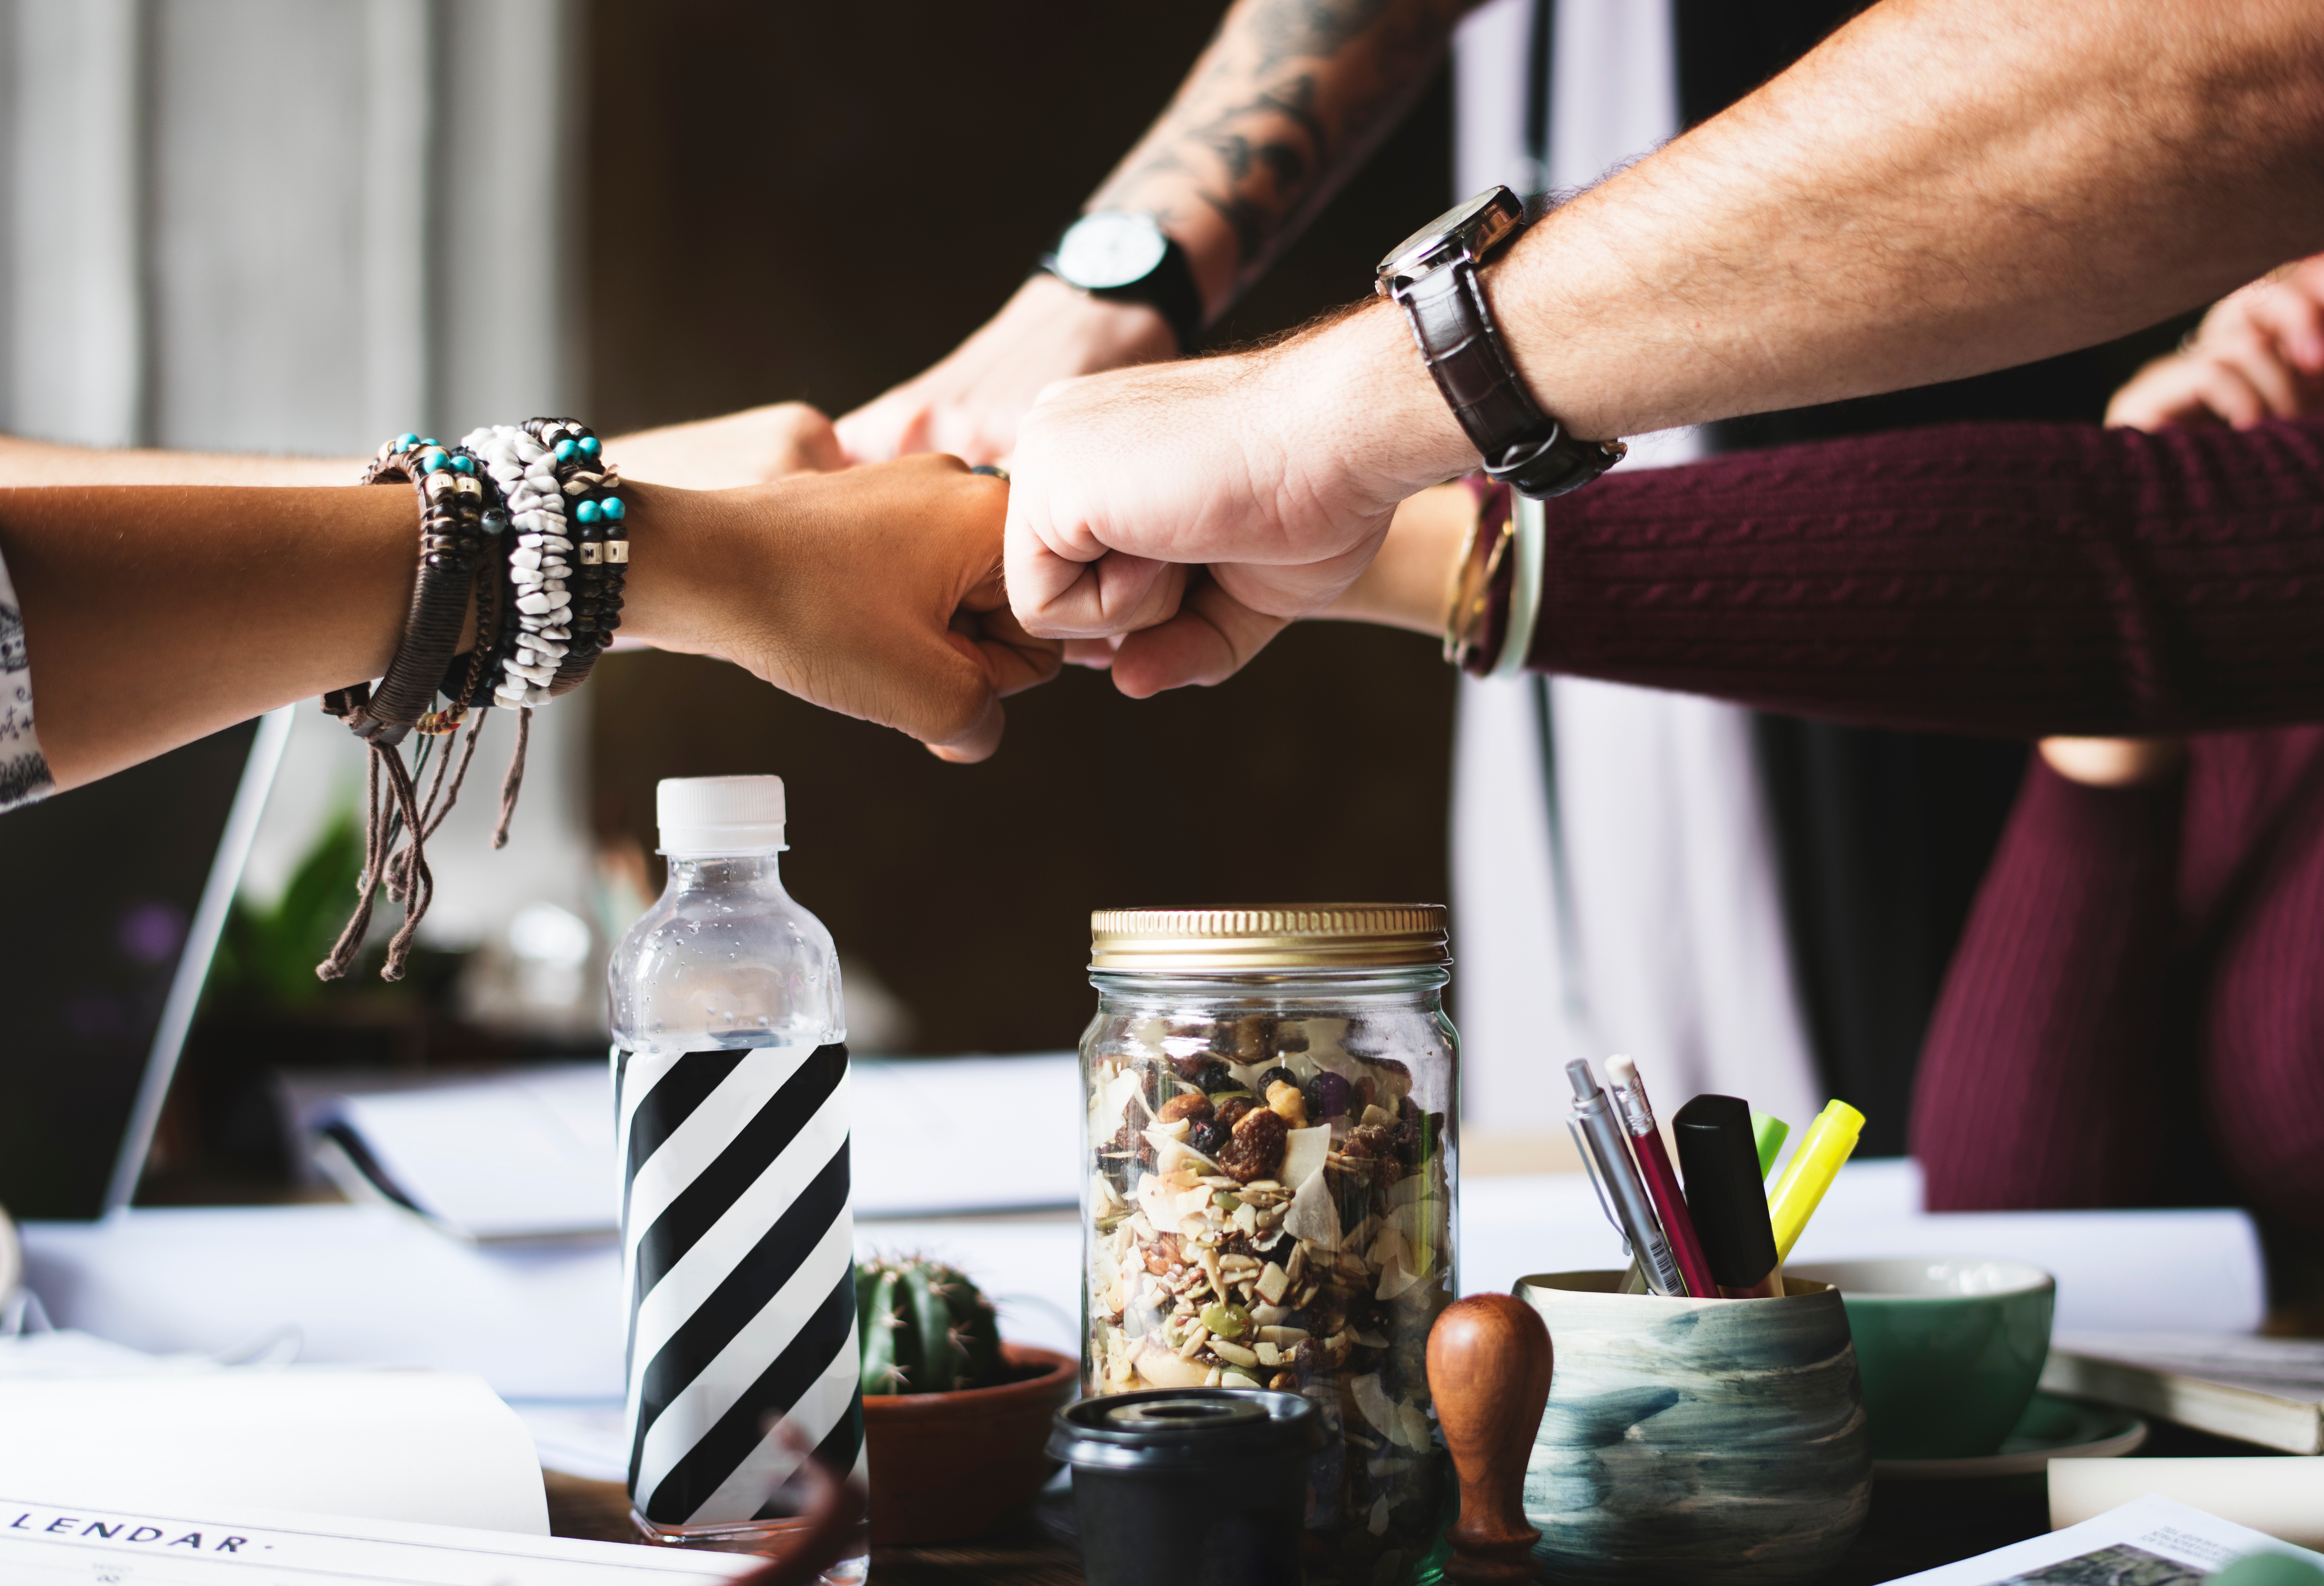 5 Tips for Improving Workplace Communication